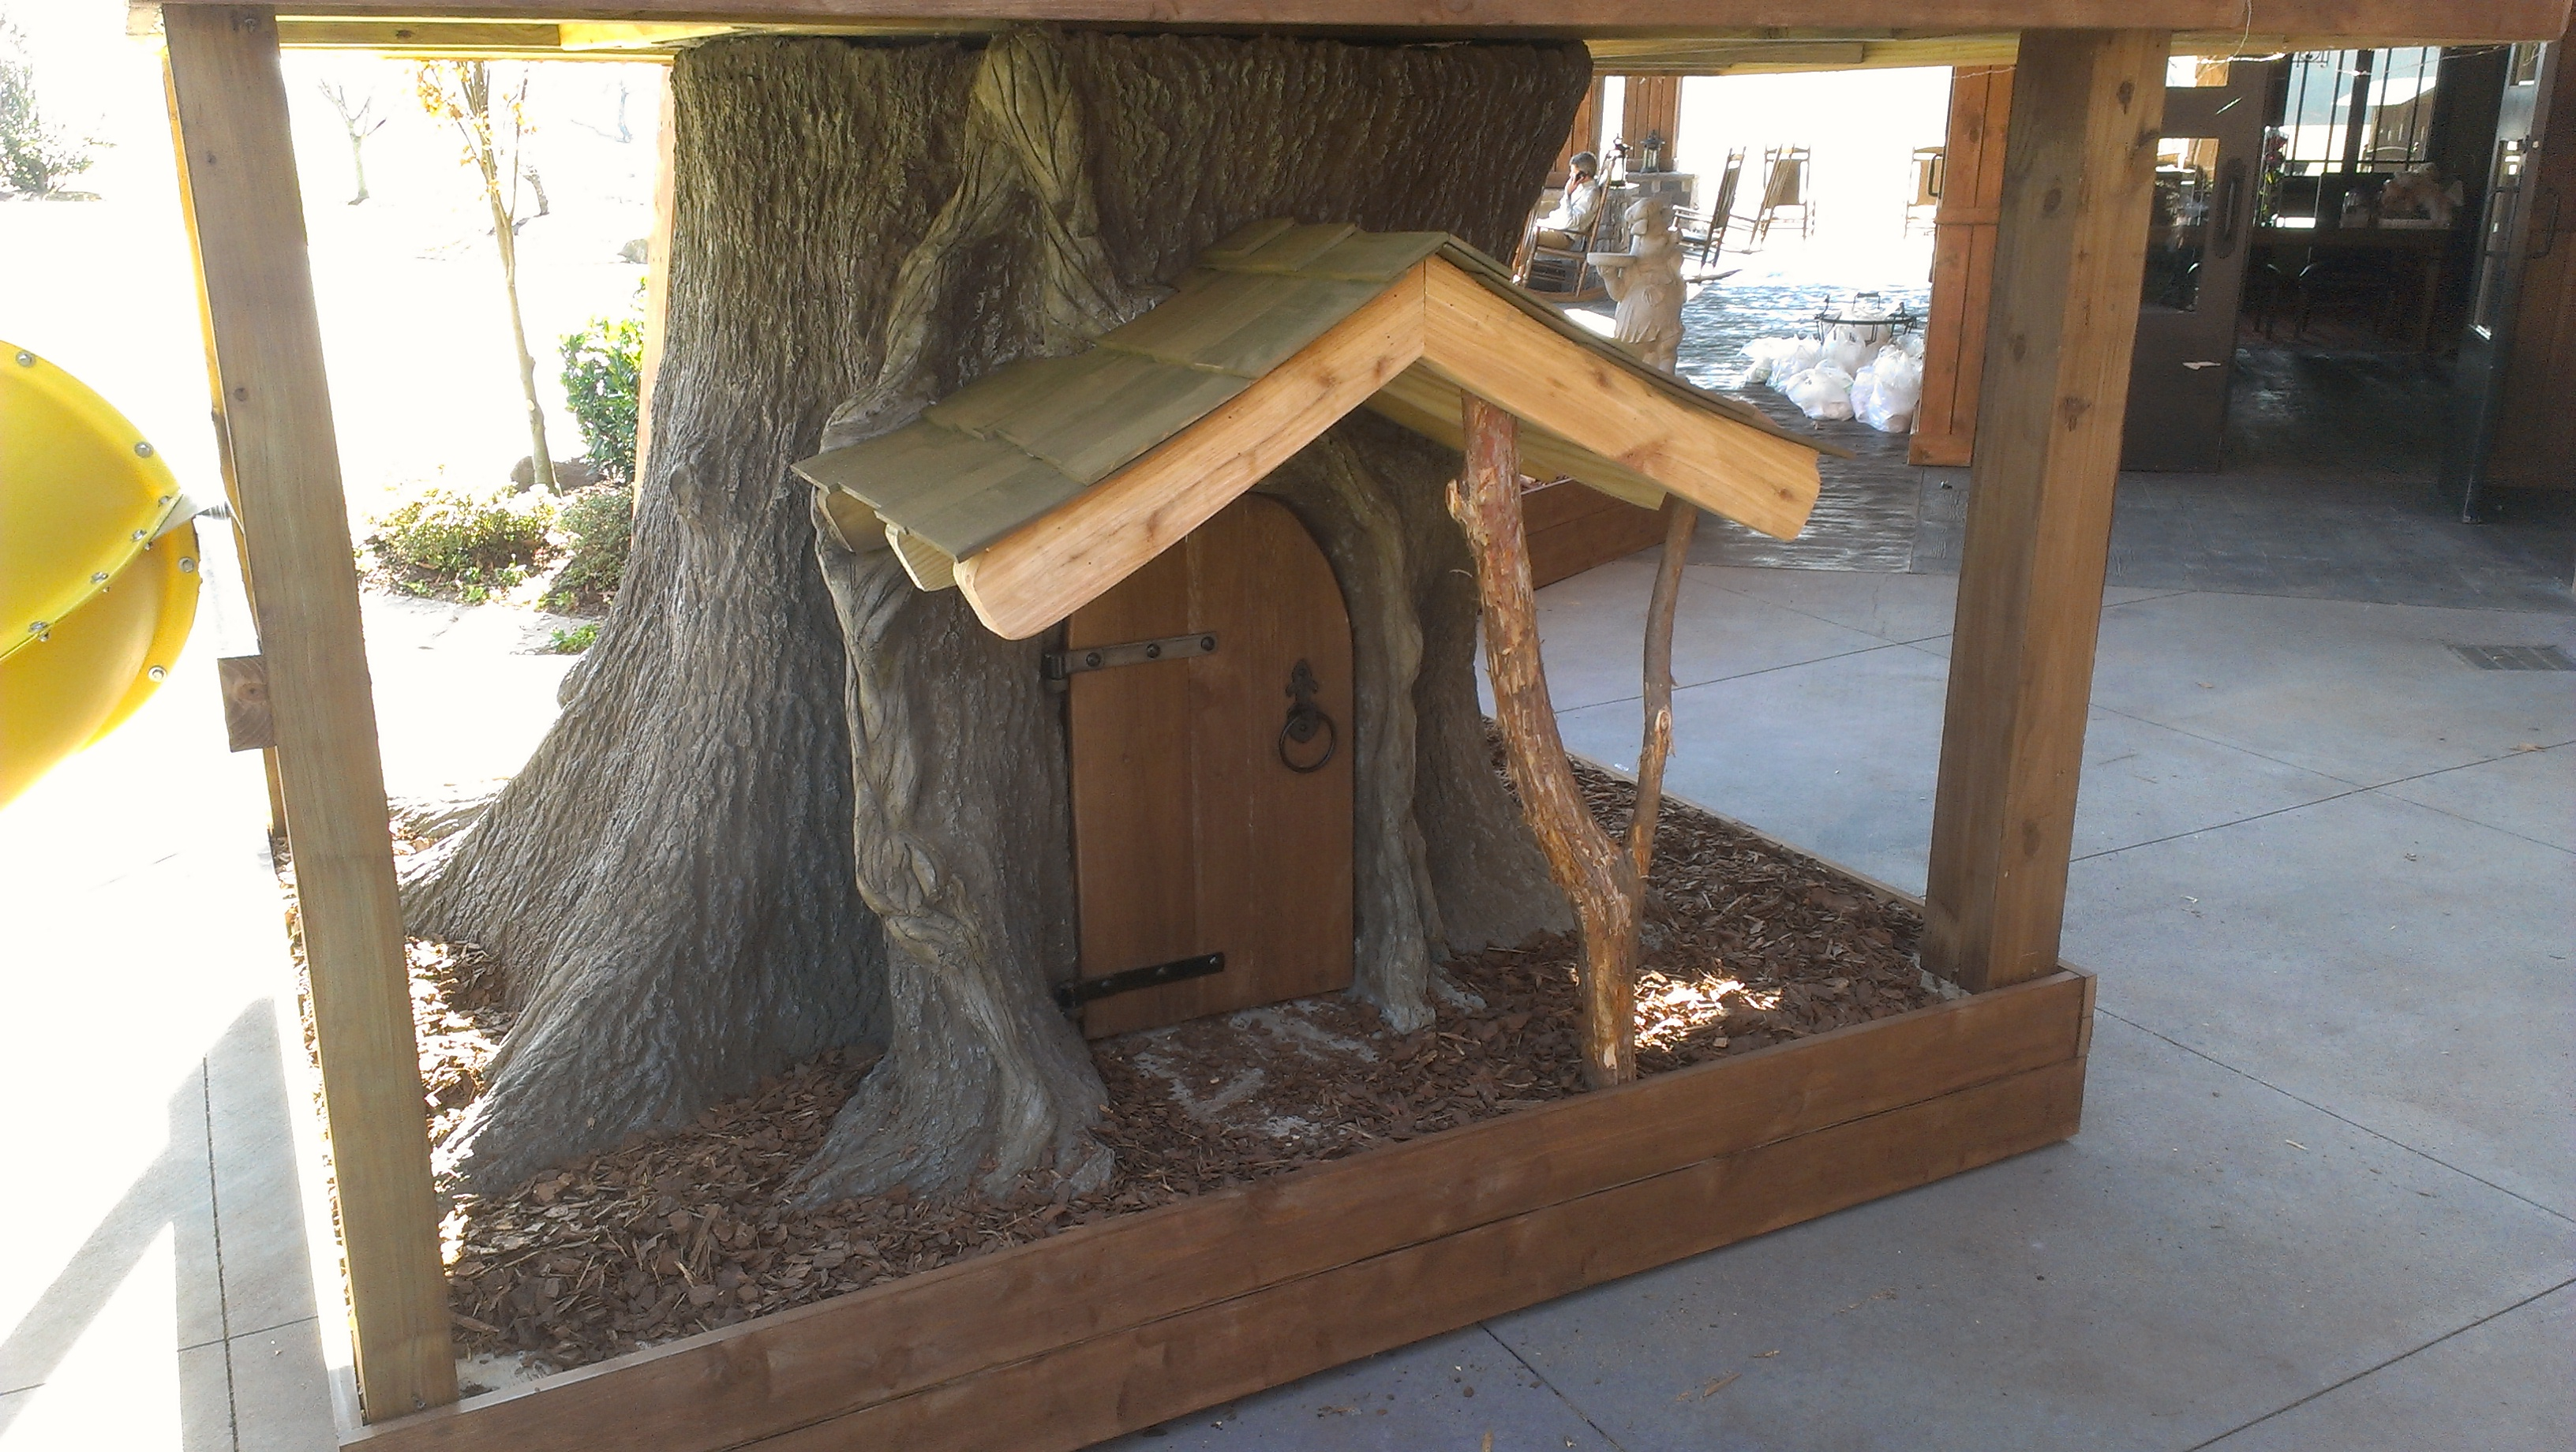 Creative Garden Spaces Inc, custom tree house construction, faux tree, concrete sculpting